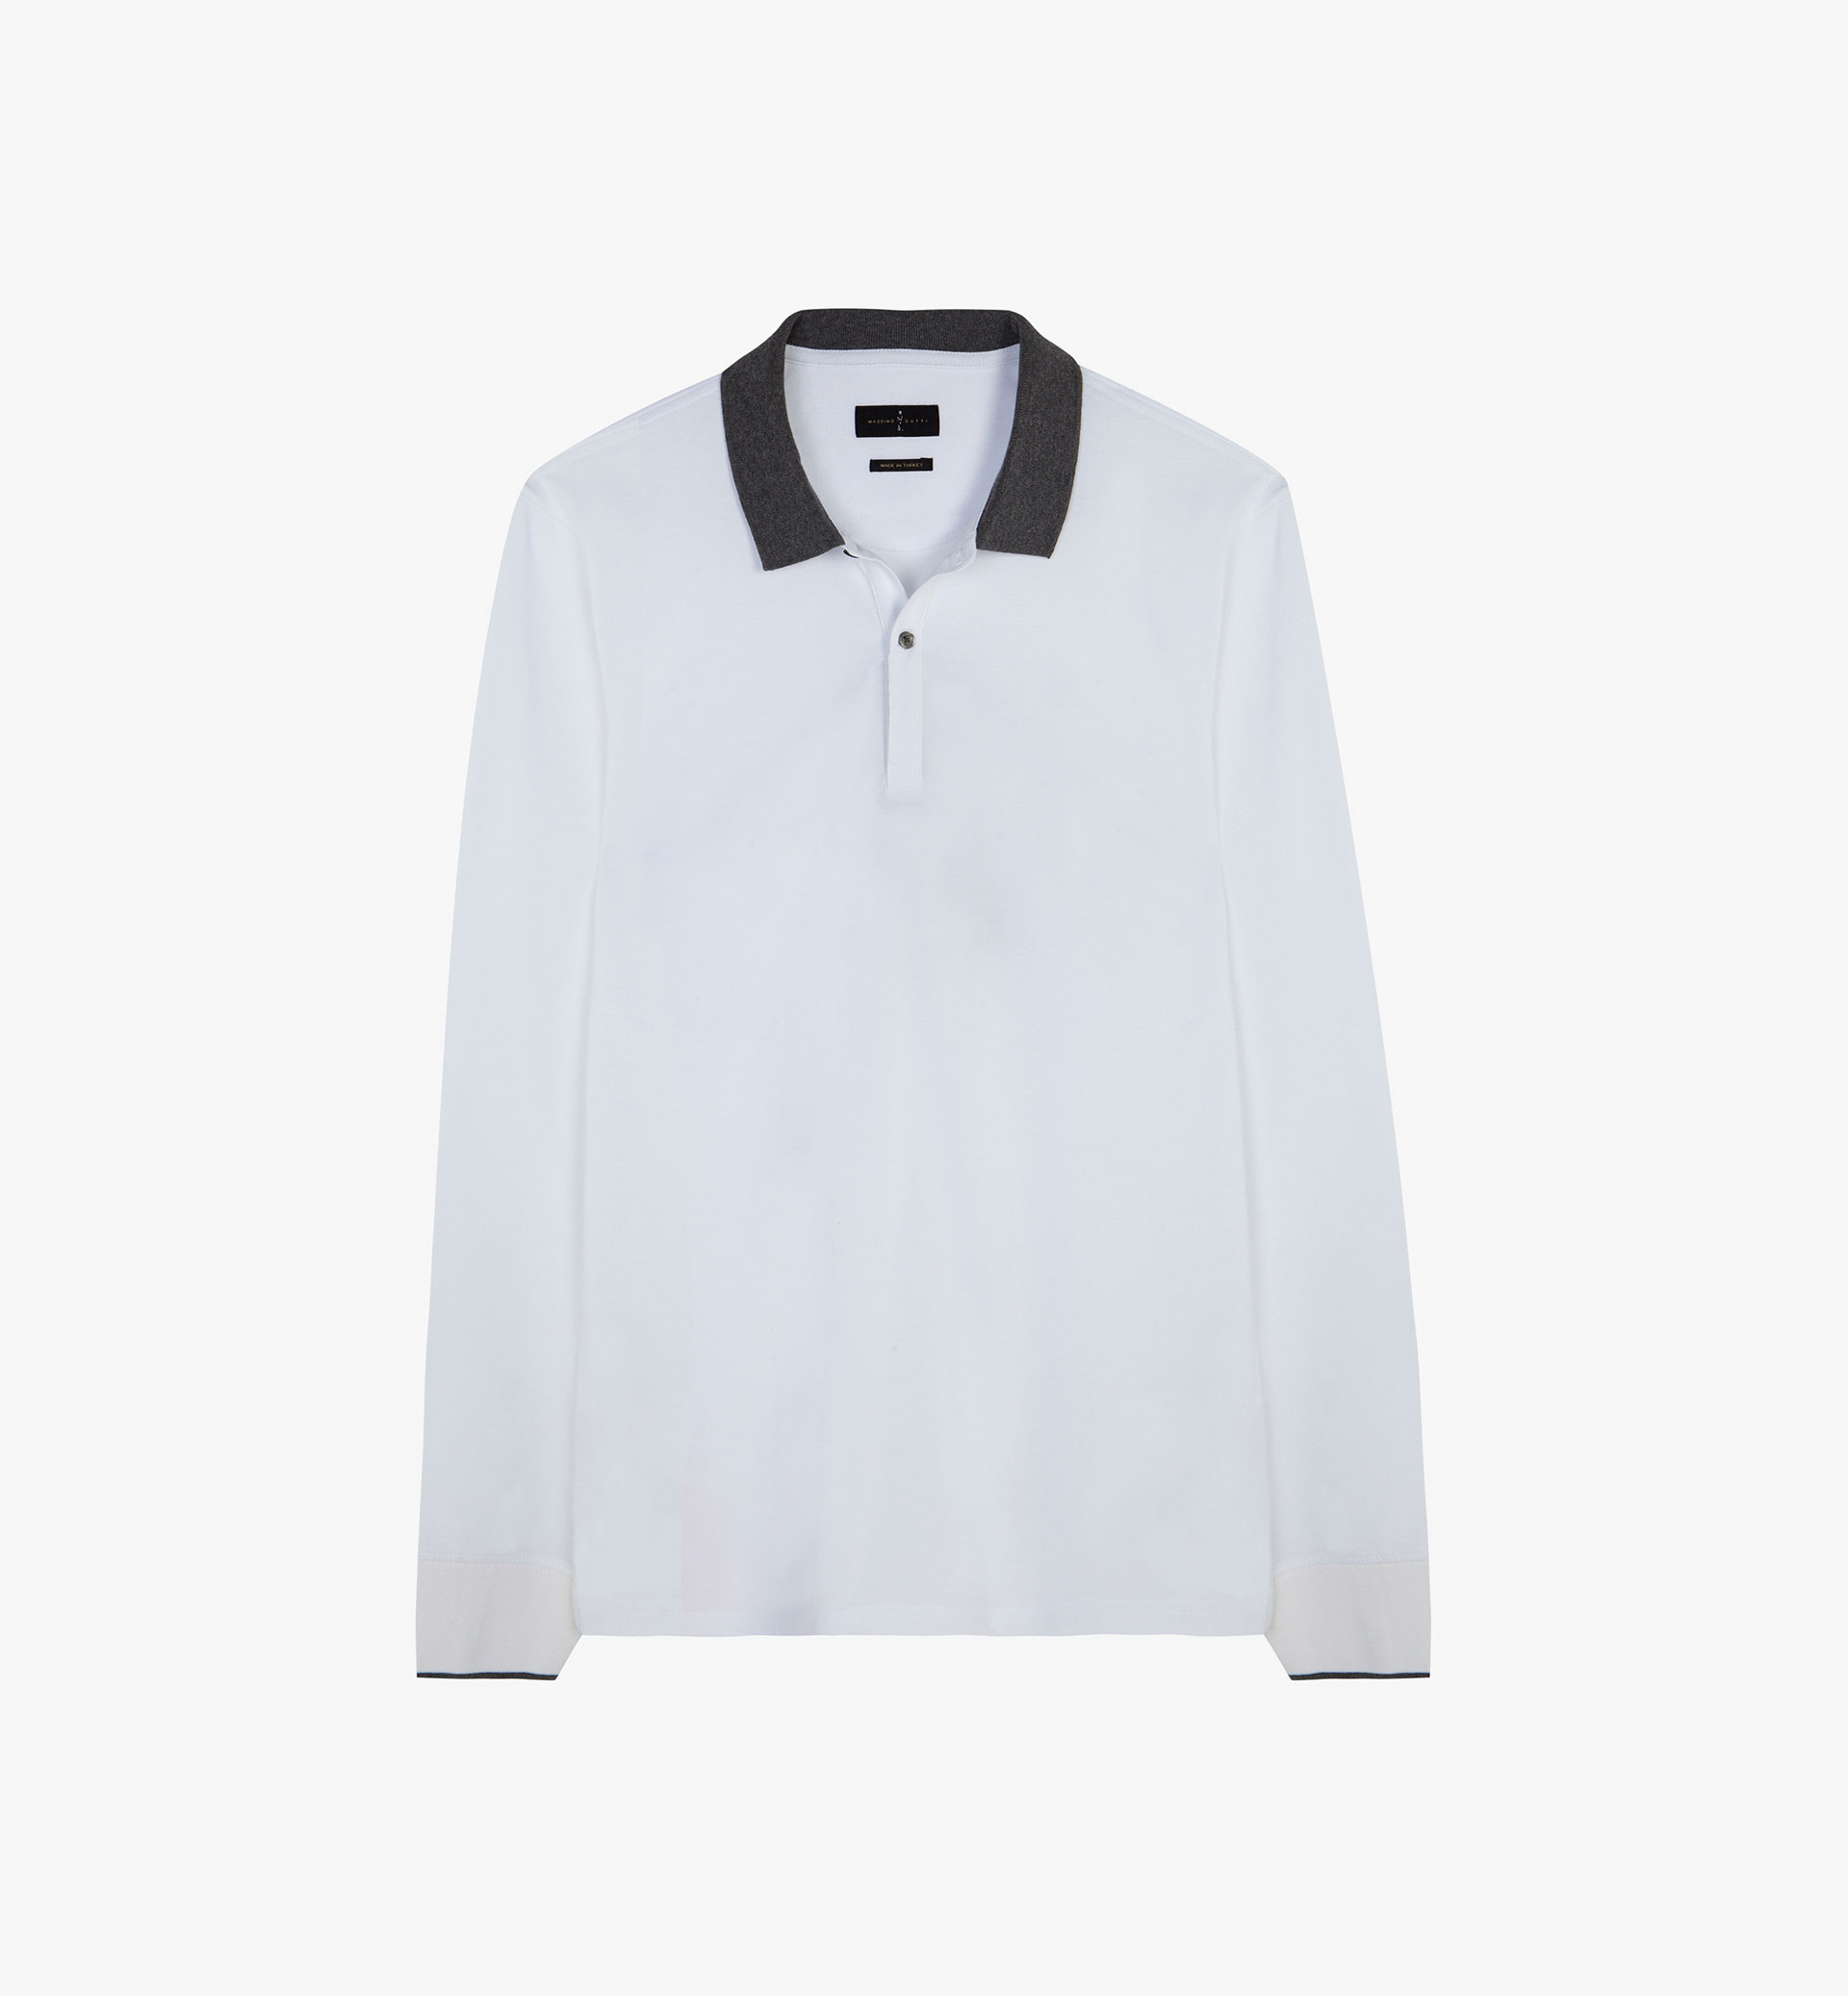 SOFT PLAIN POLO SHIRT WITH CONTRASTING DETAIL